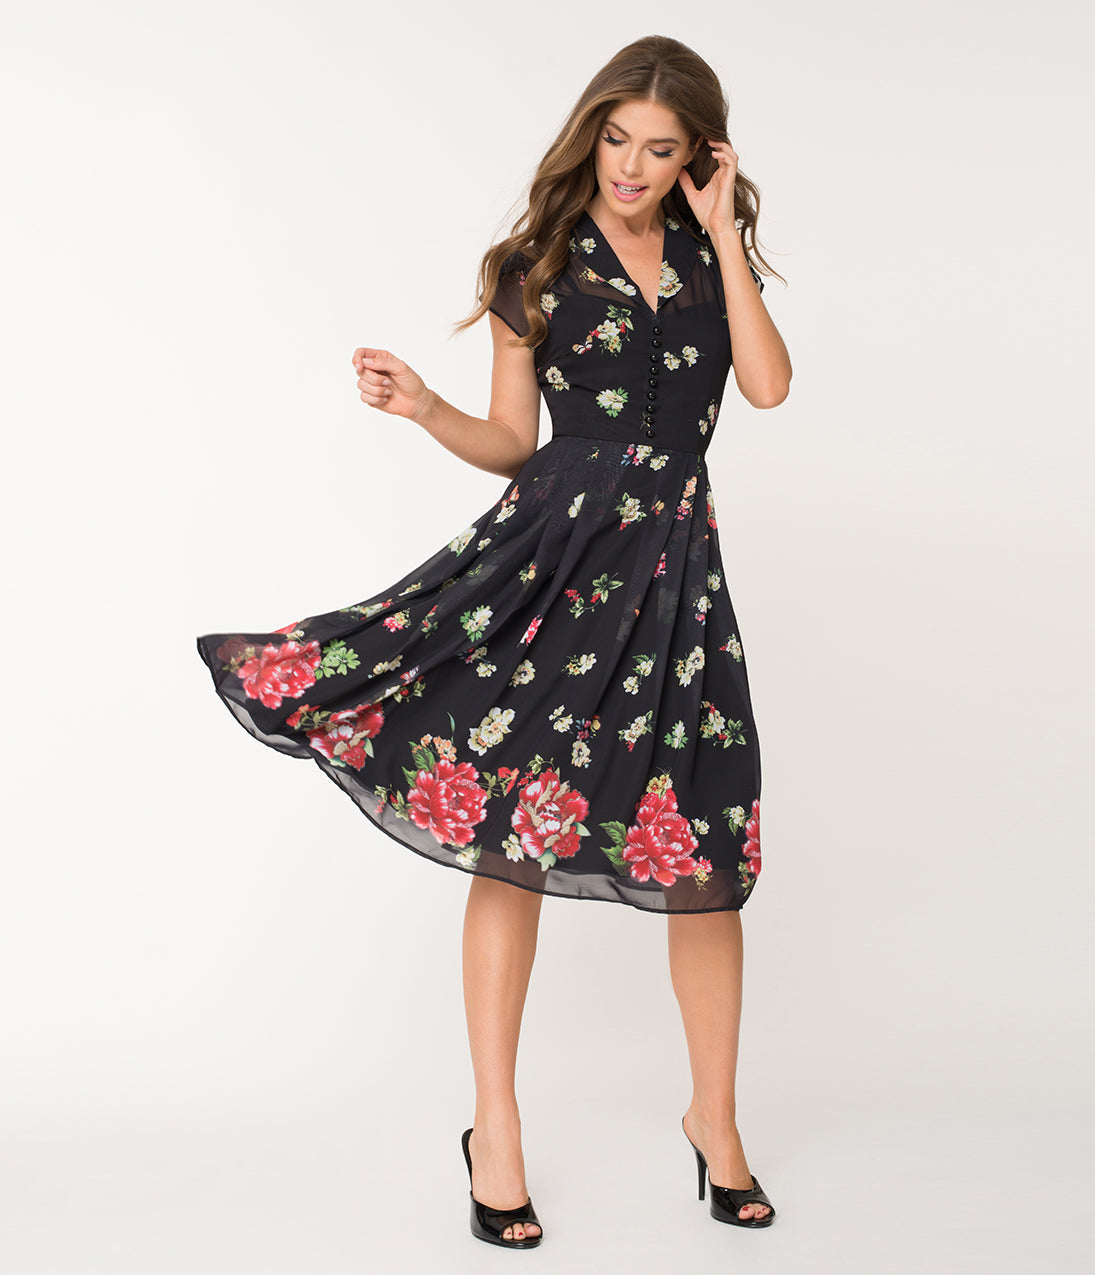 500 Vintage Style Dresses for Sale Hell Bunny Black Floral  Butterfly Jolie Papillon Chiffon Swing Dress $92.00 AT vintagedancer.com